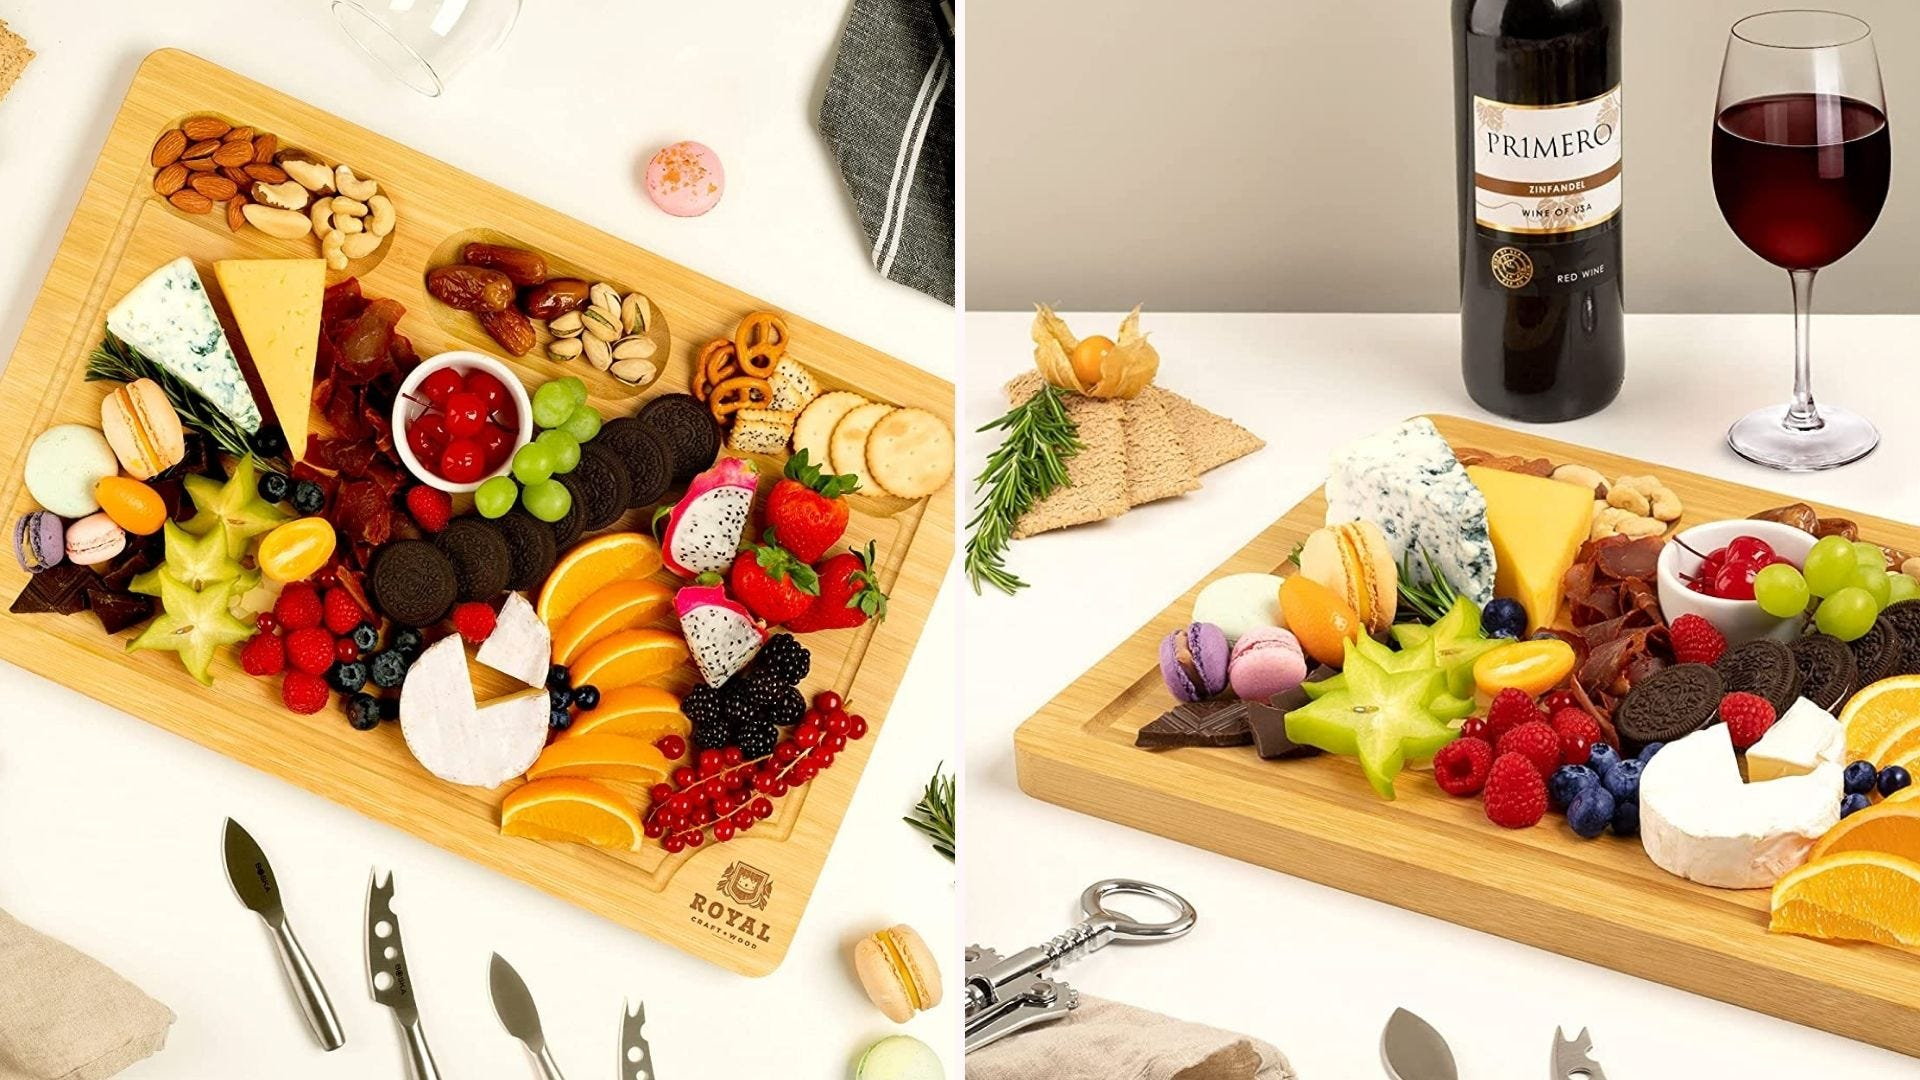 Two side by side images displaying the Royal Craft Wood extra large cheese board.